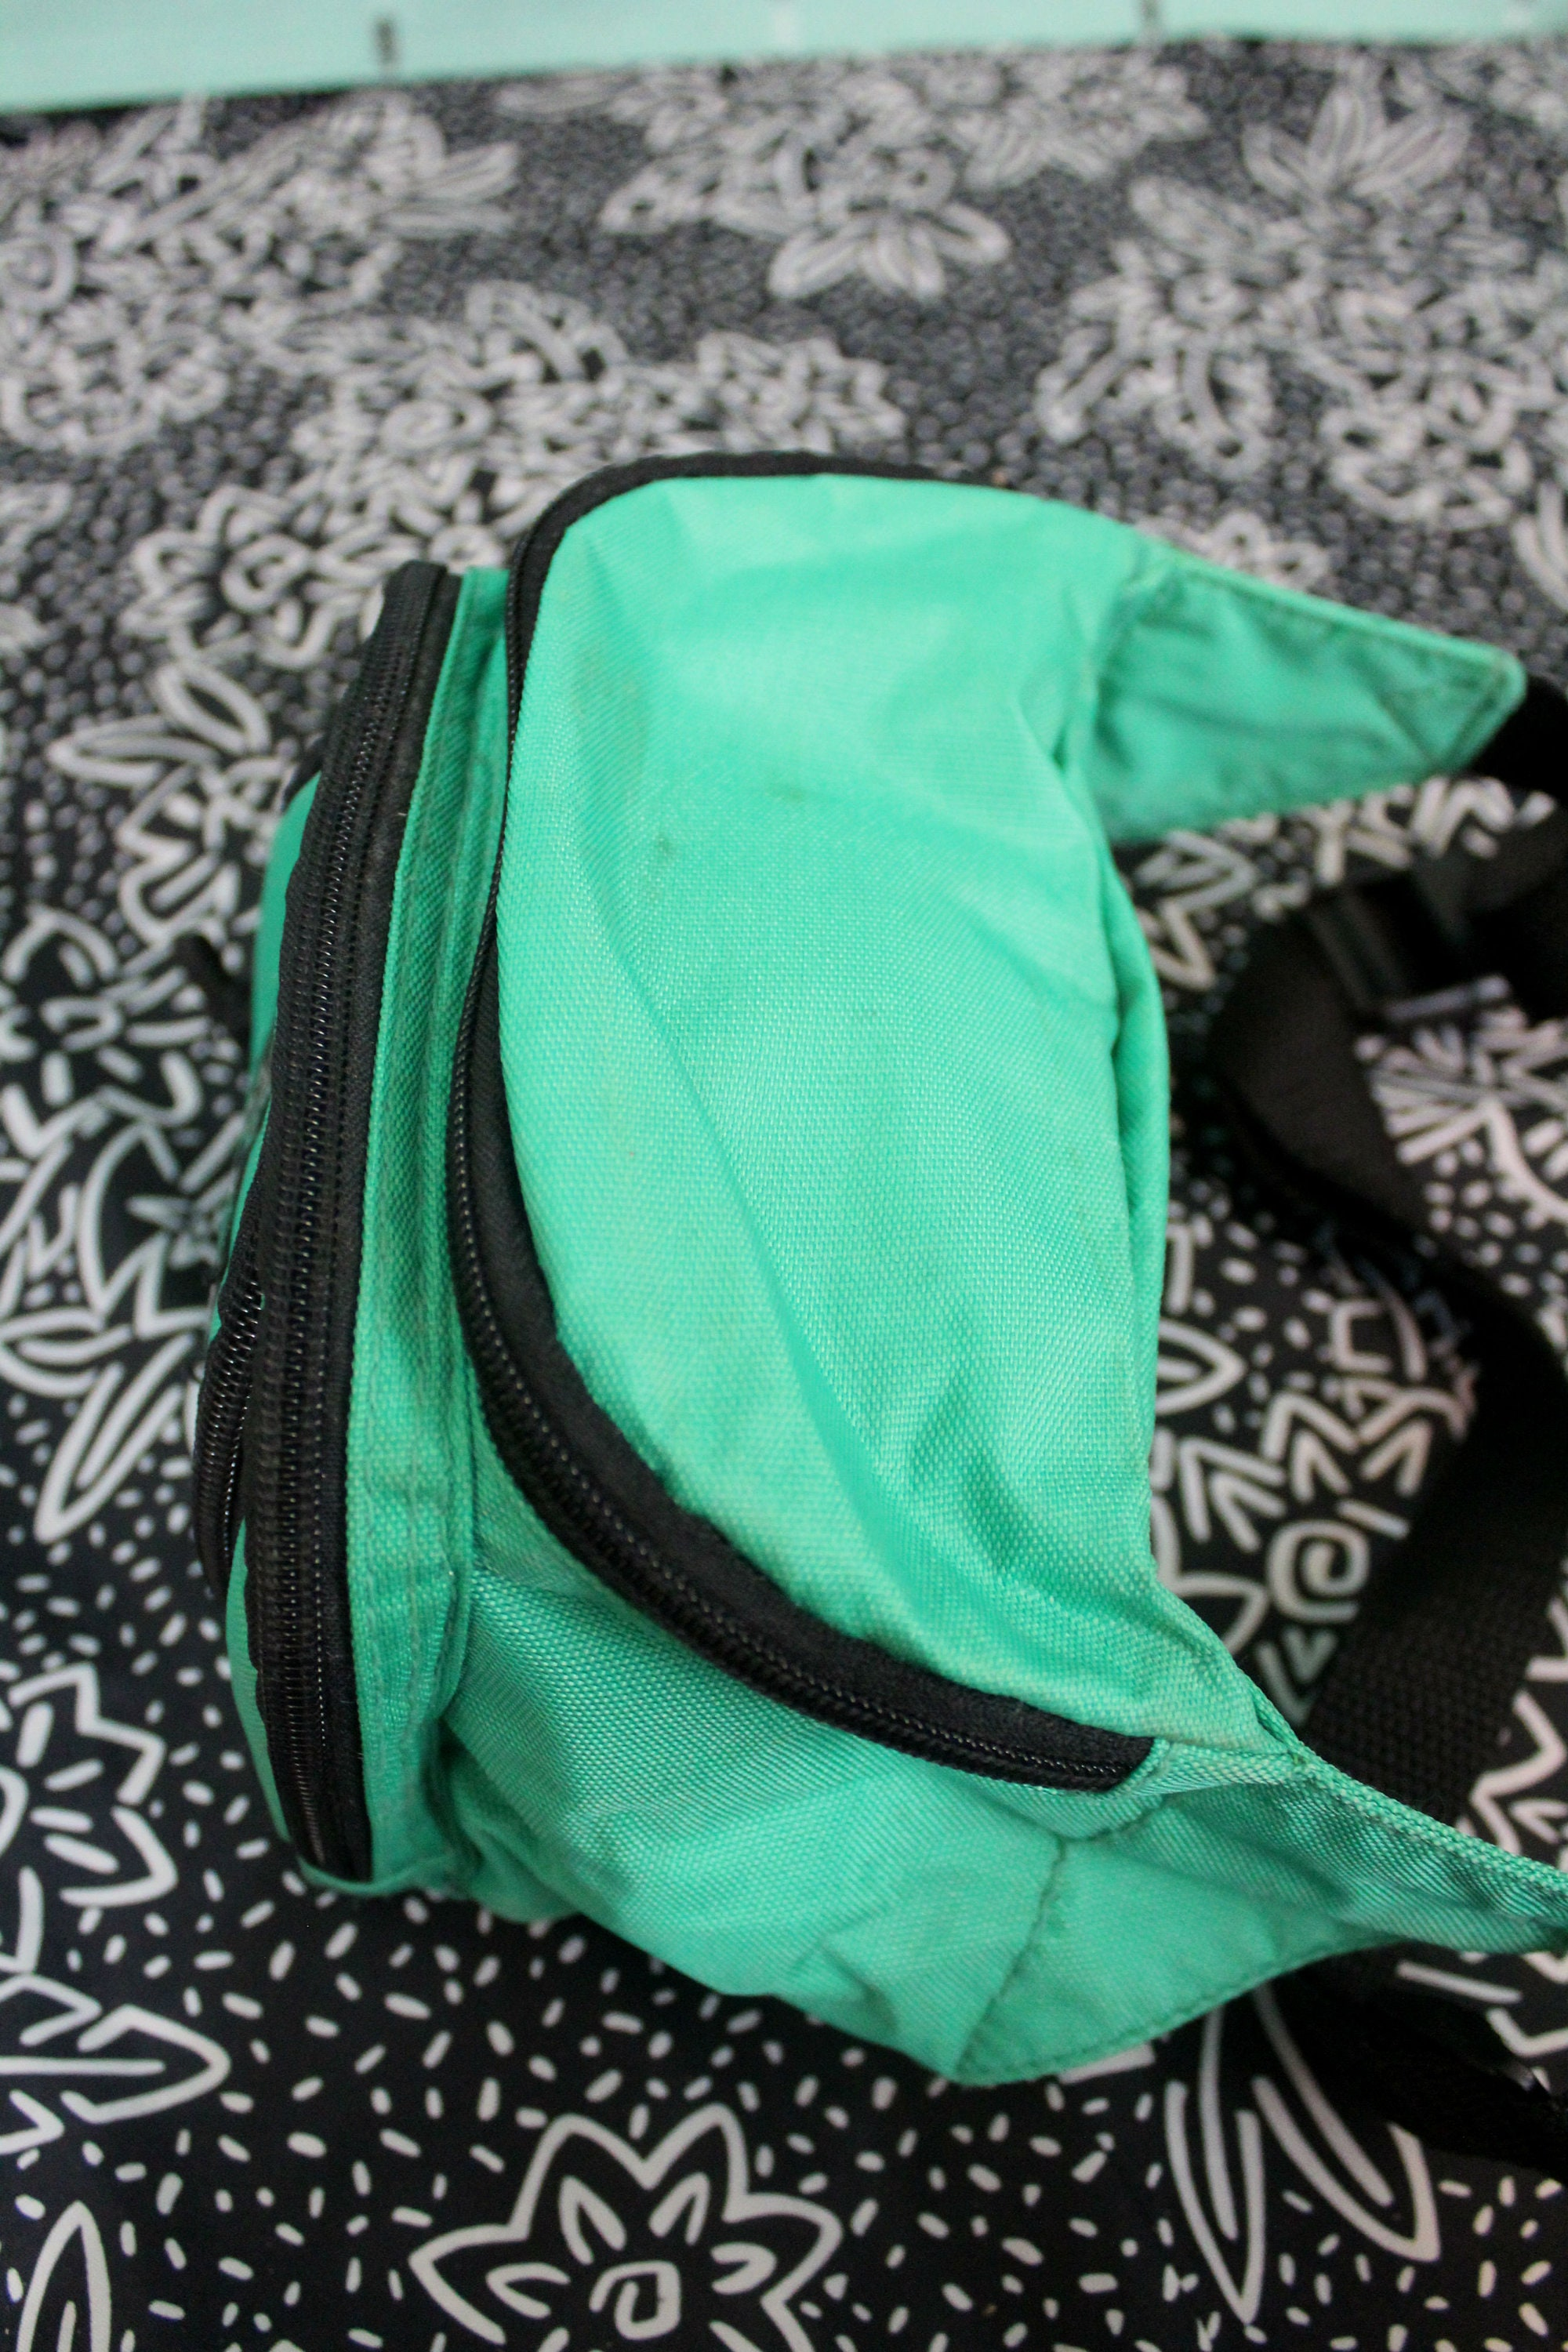 cddaa7bb1ff6 Vintage 80s or 90s Seafoam Green Neon Hipster Fanny Pack. Rare Funky ...